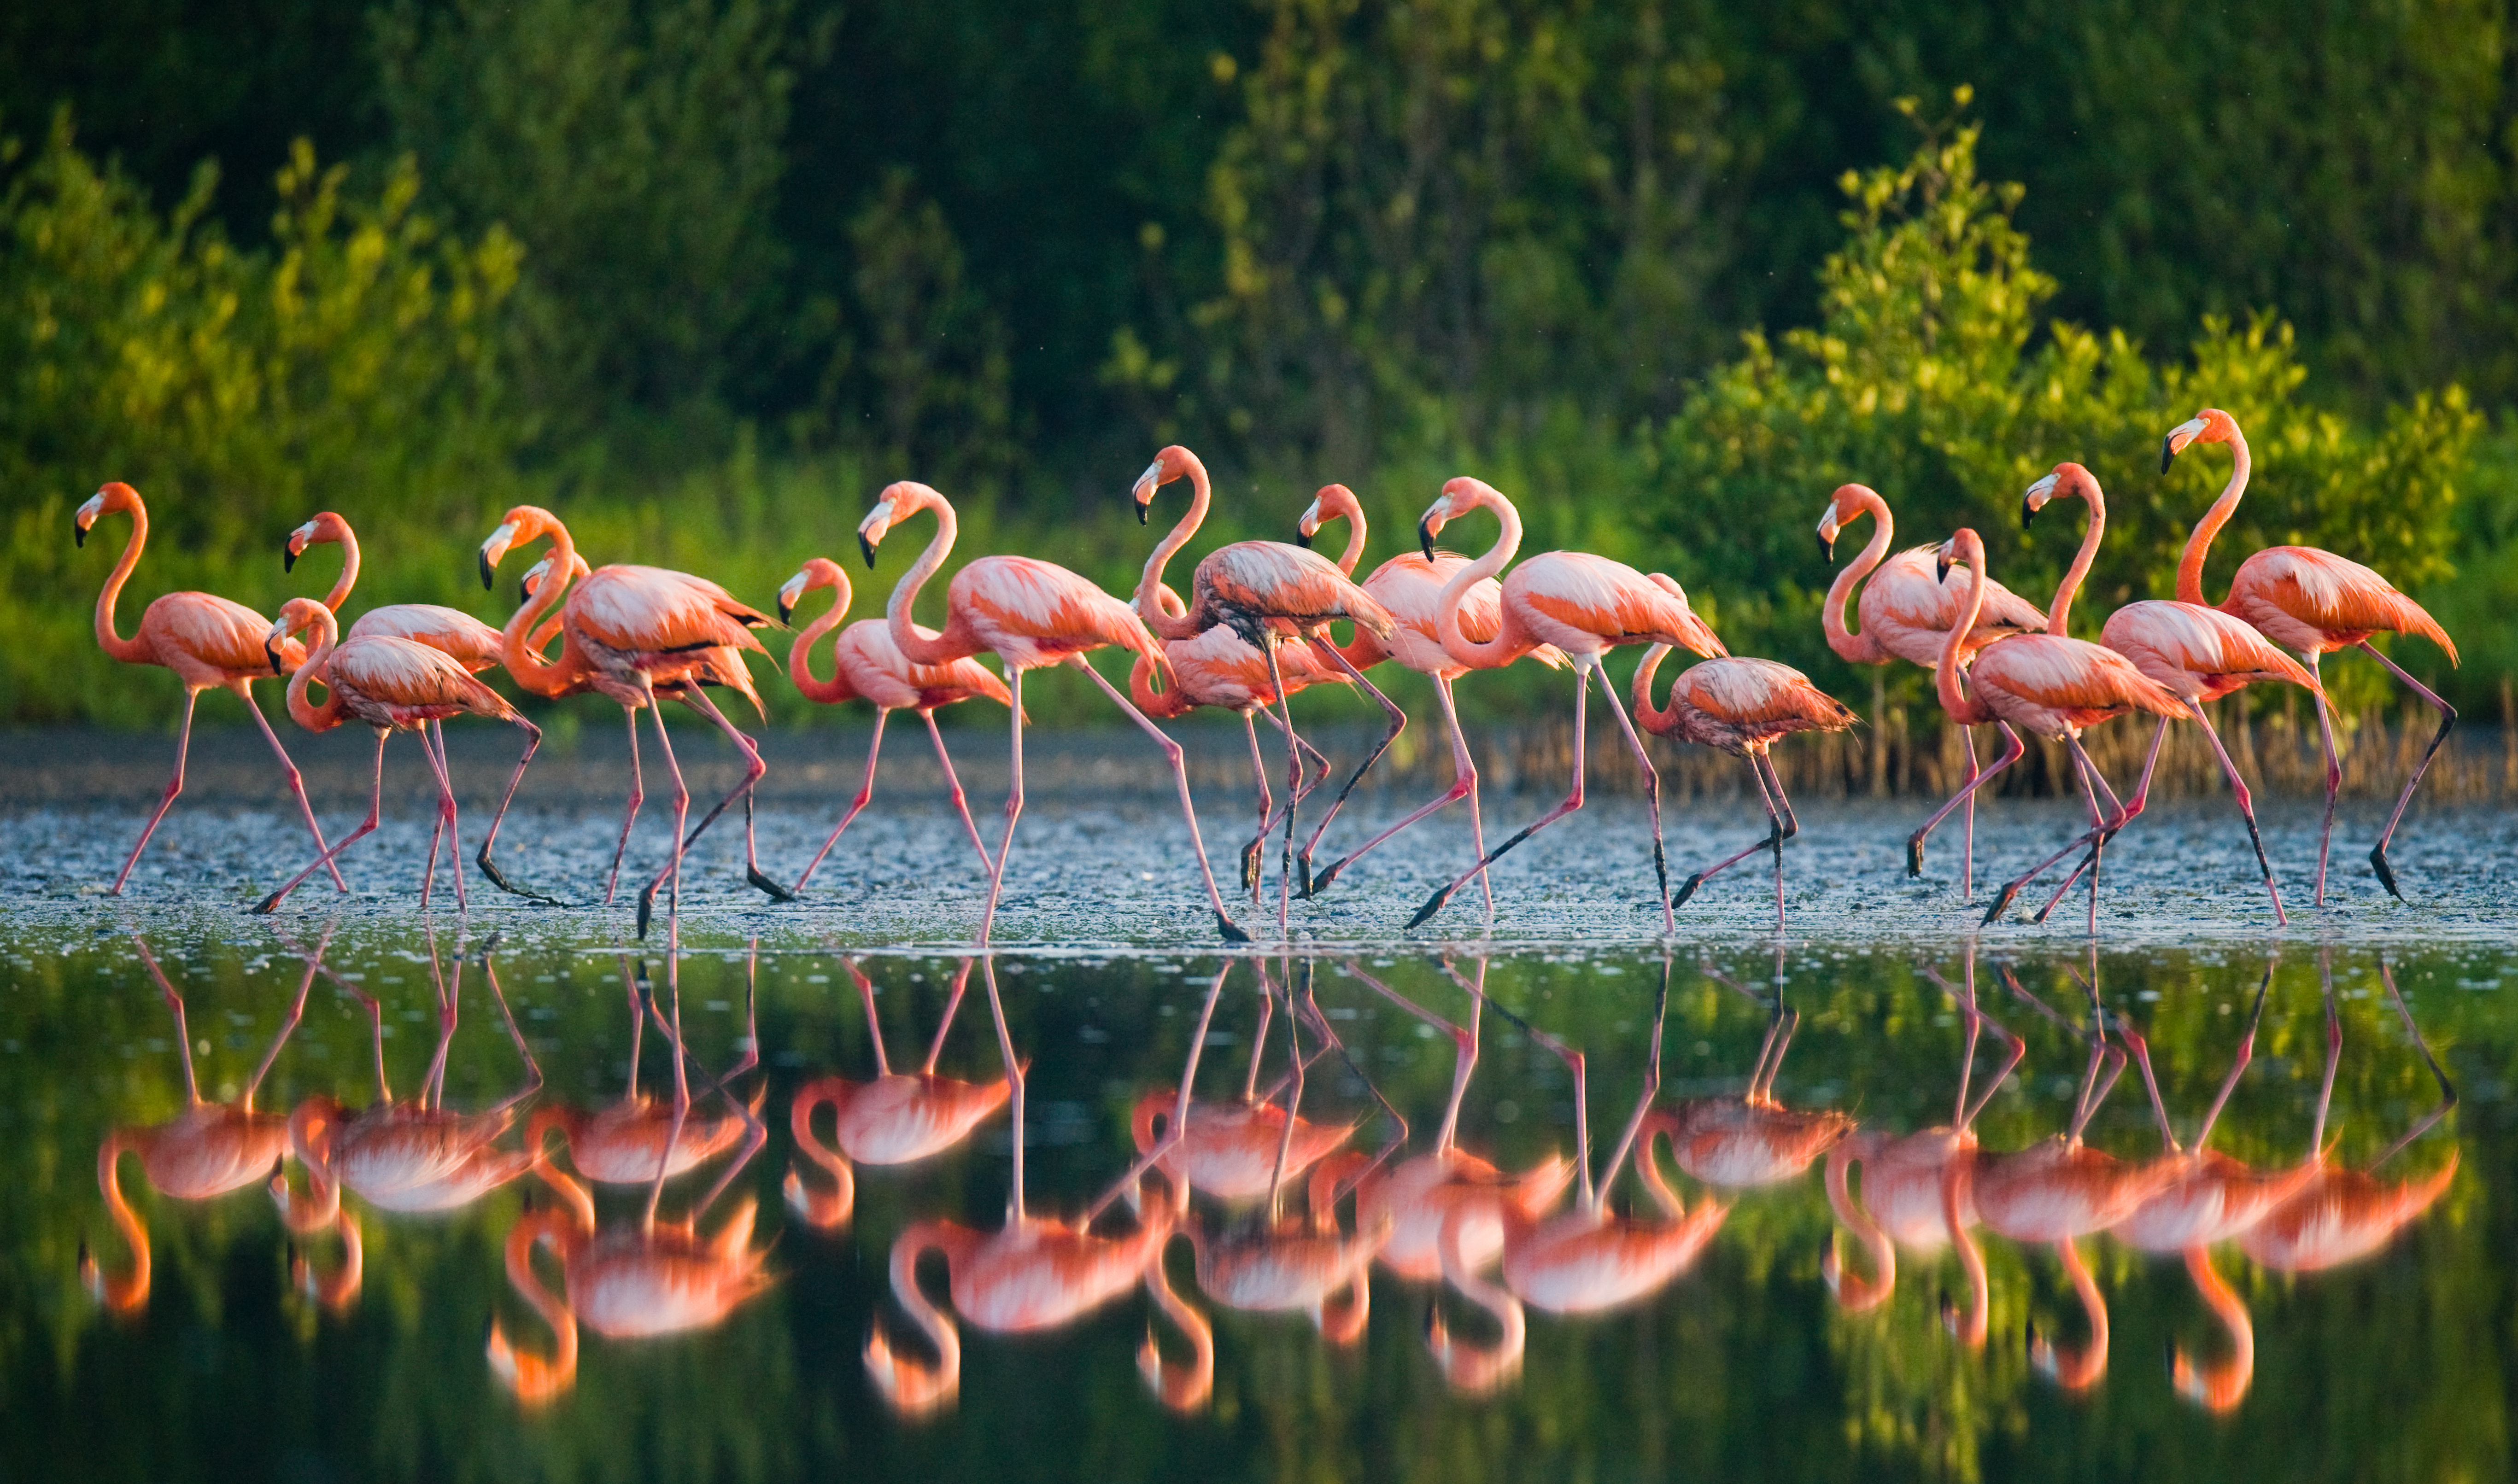 Flamingos standing in water with reflection - AdobeStock_92614881